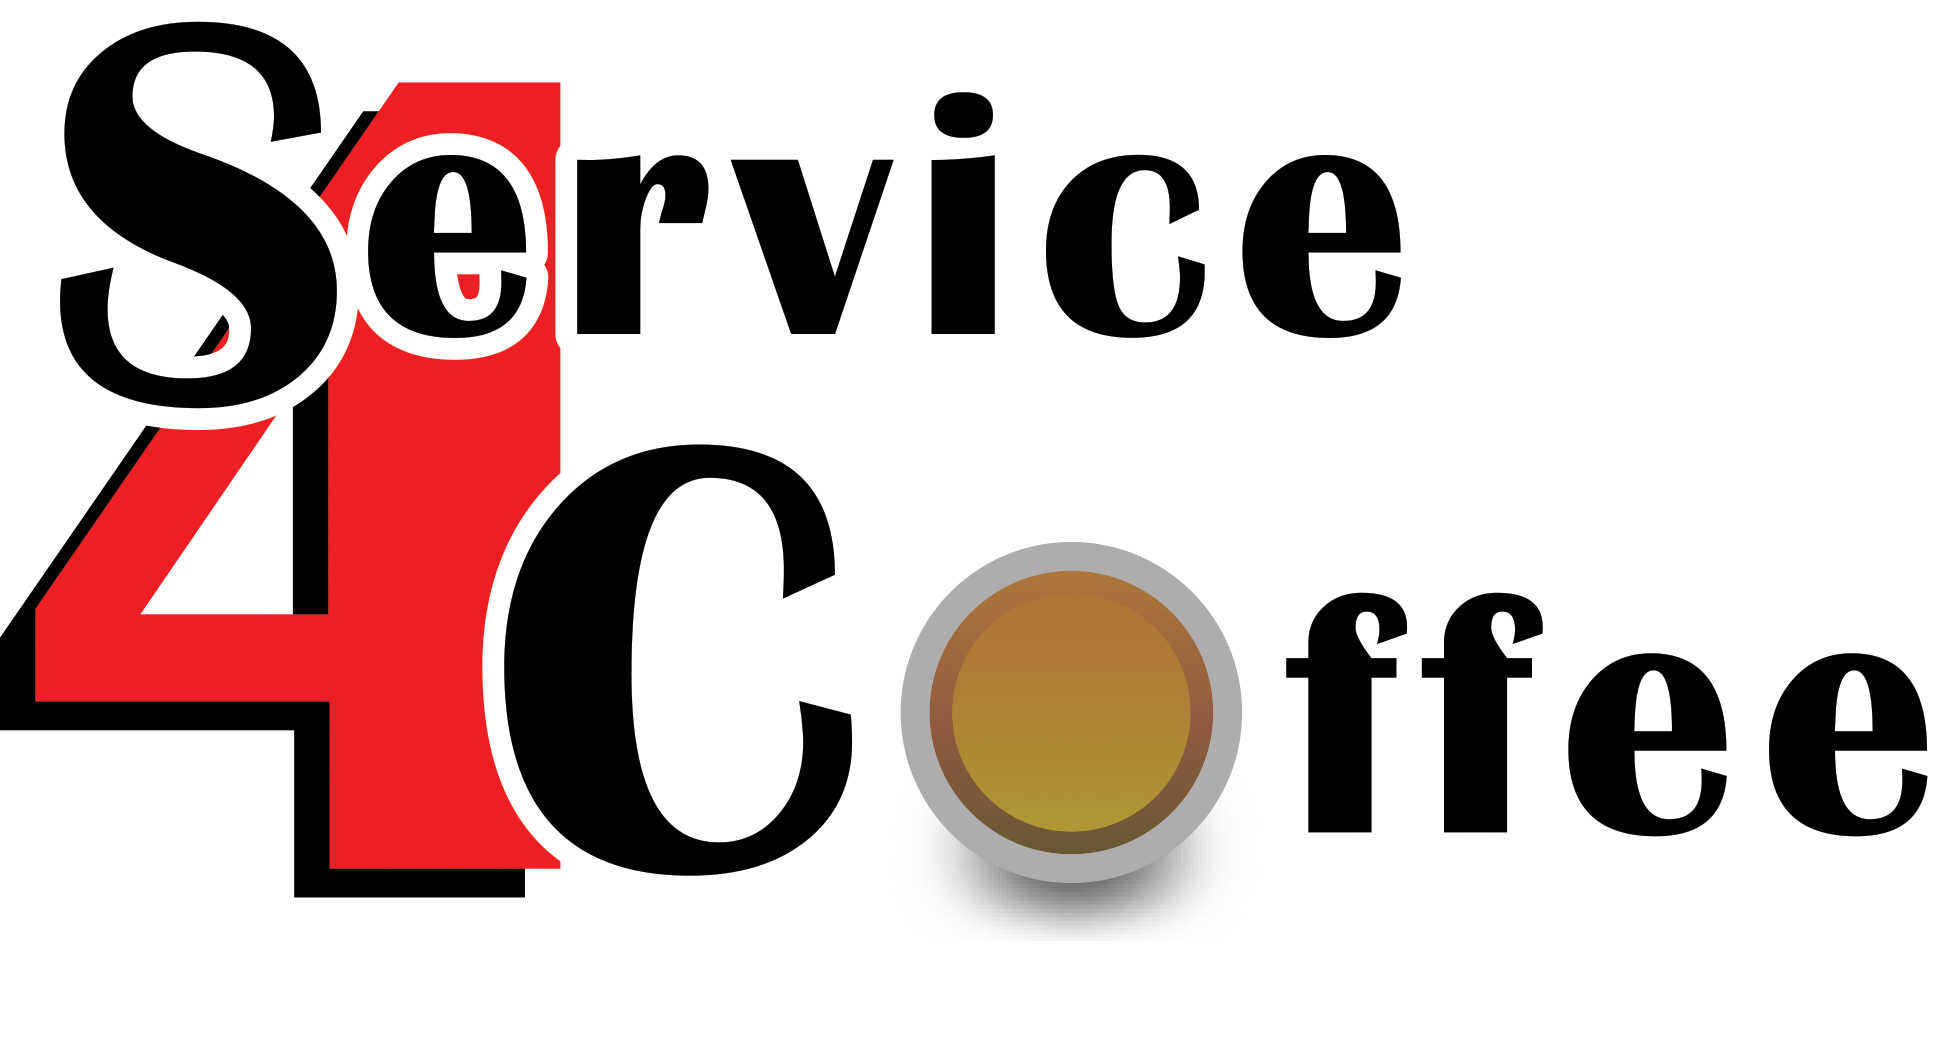 Service for Coffee Logo